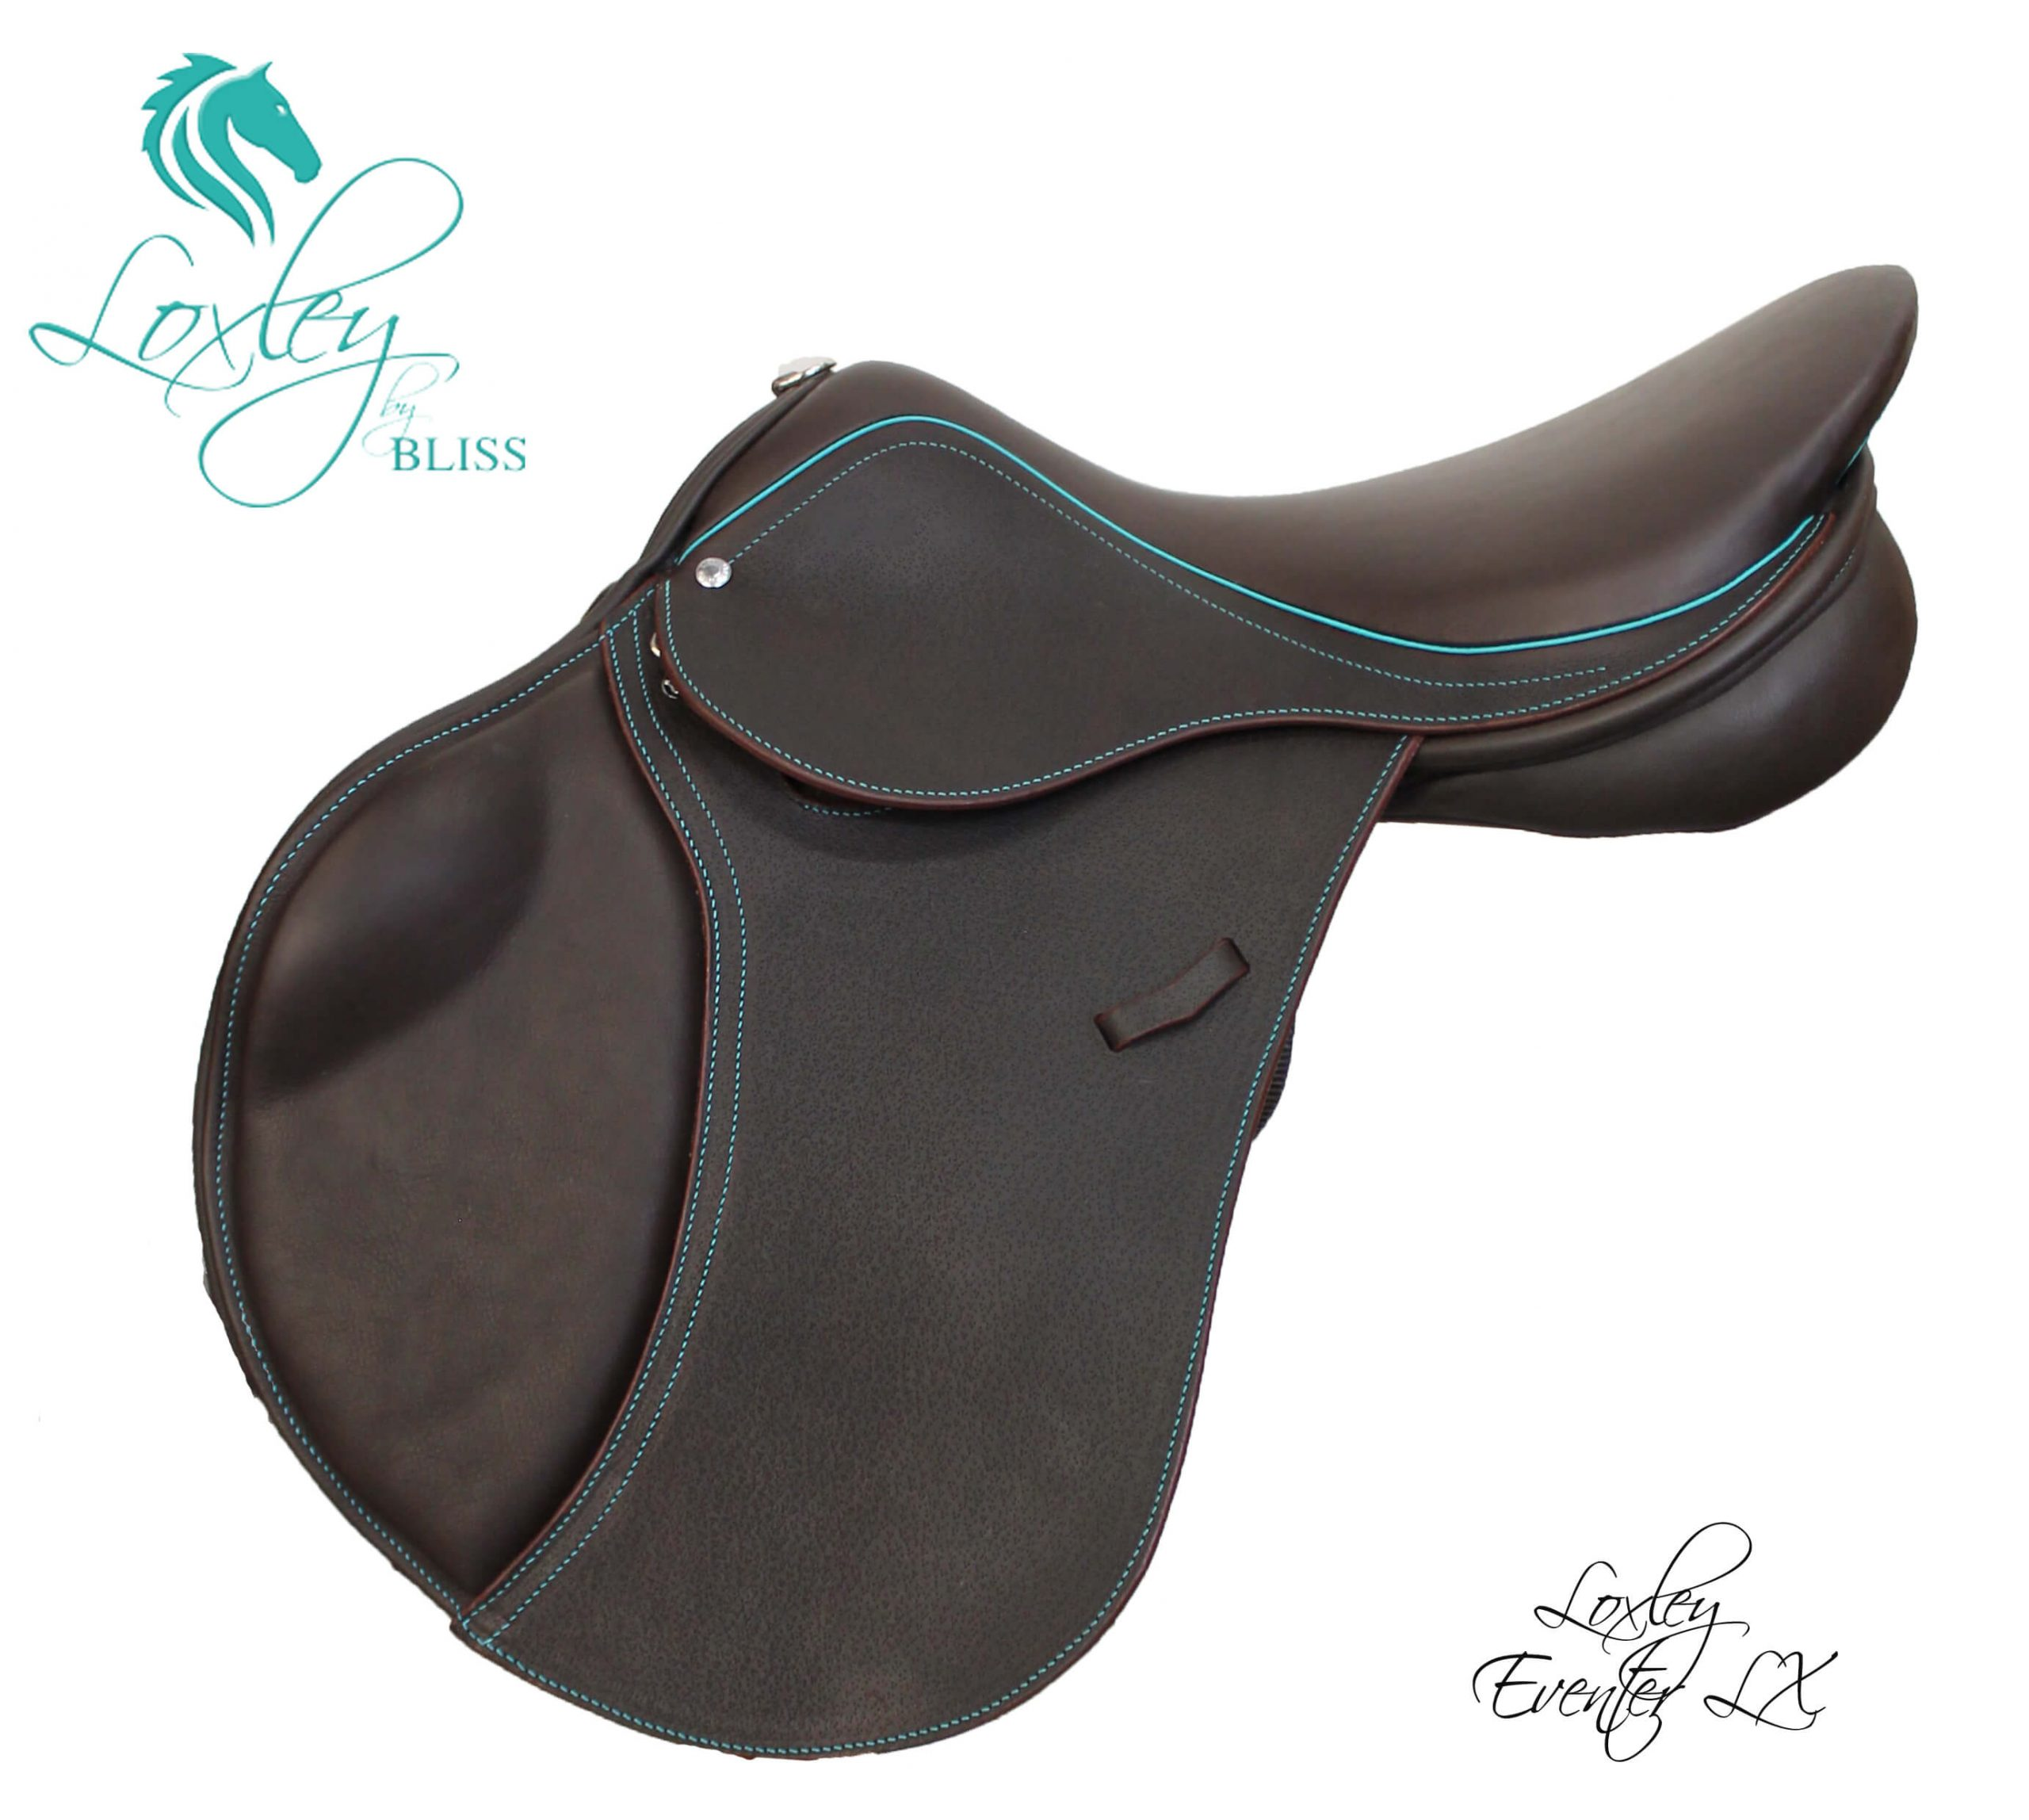 Loxley Eventer LX